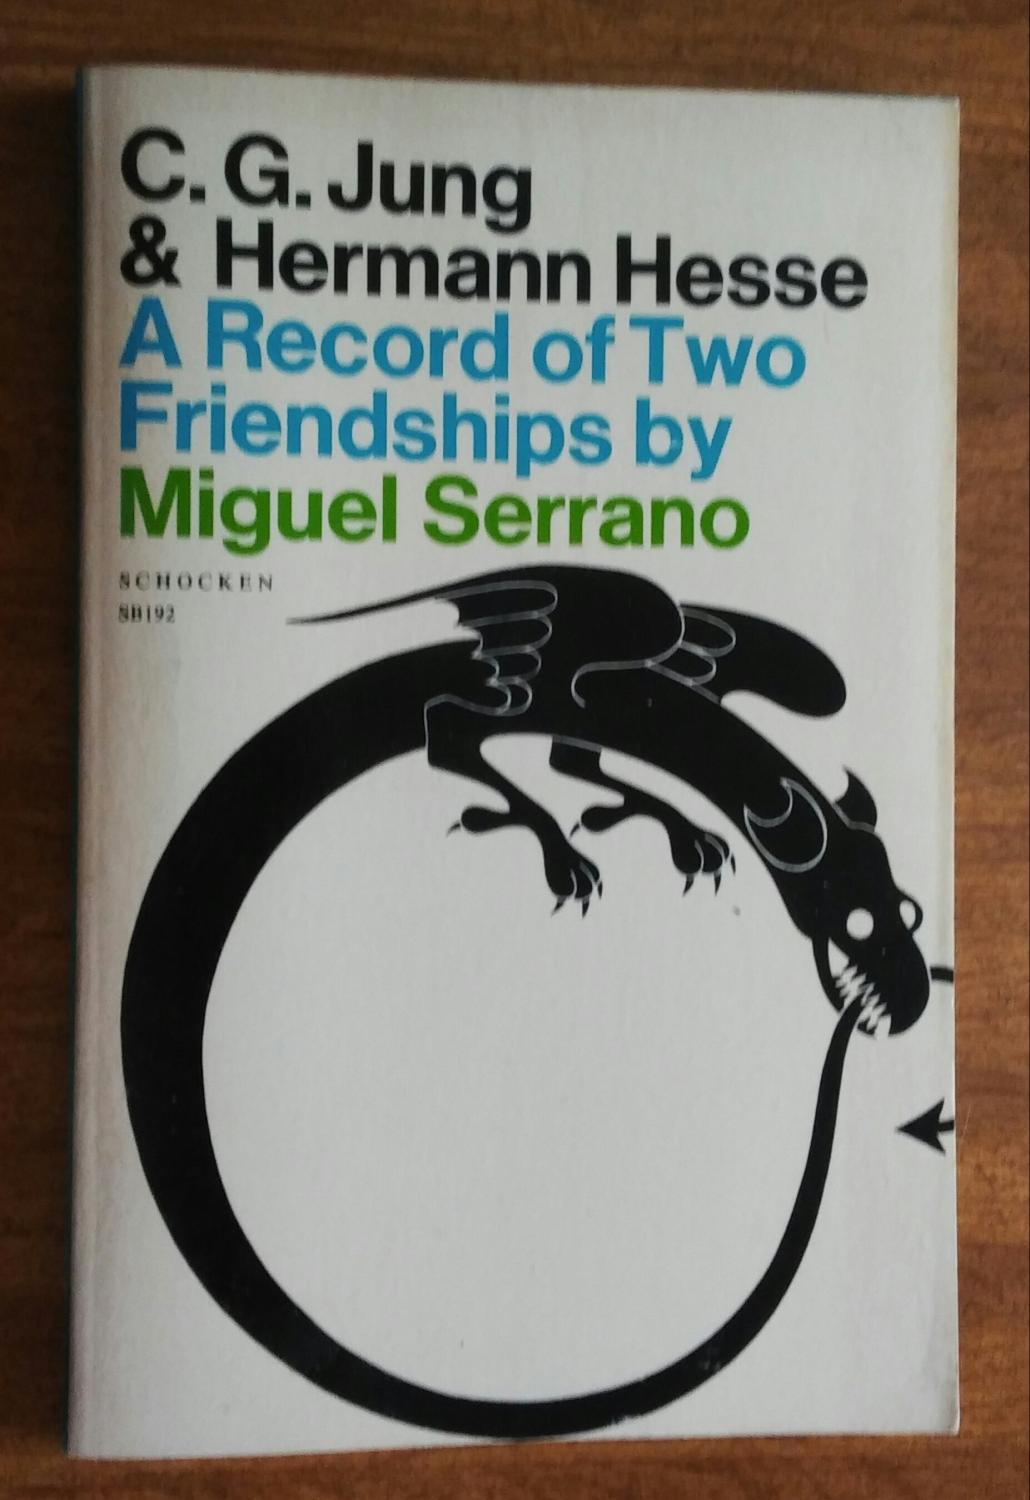 C.G. Jung and Hermann Hesse: A Record of Two Friendships, Serrano, Miguel